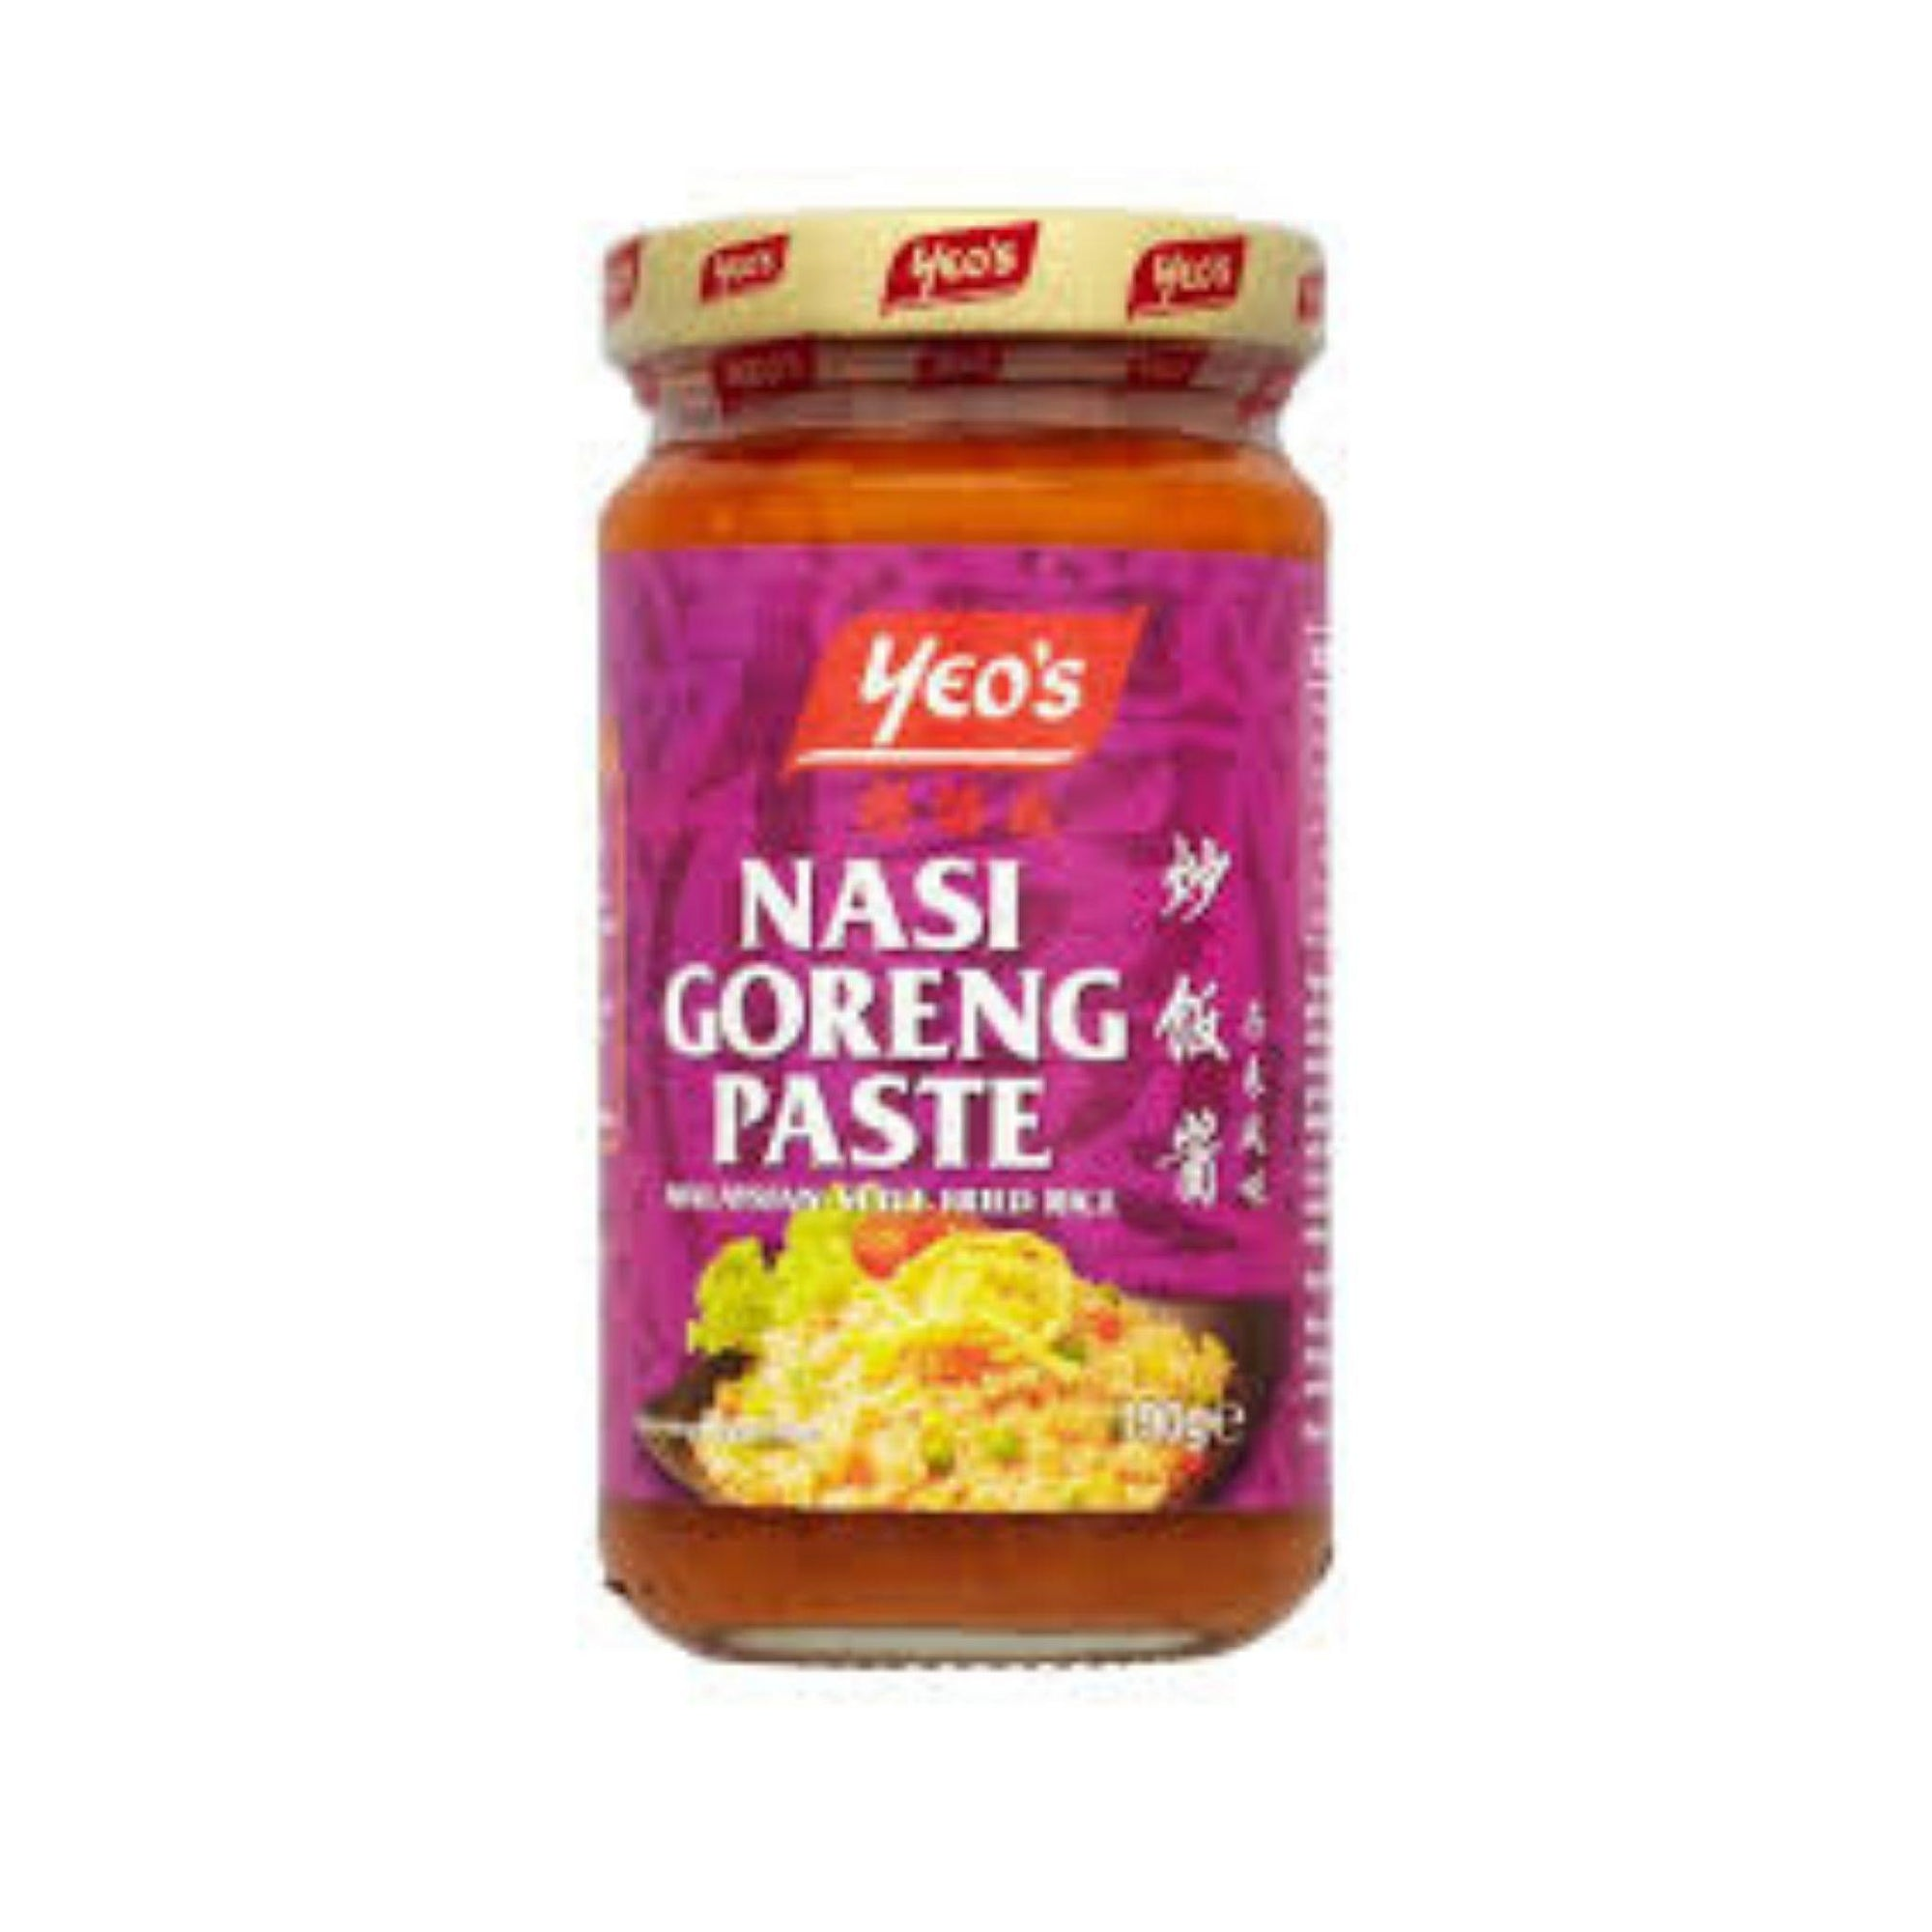 Yeo's Nasi Goreng Paste 190G - Asian Harvest